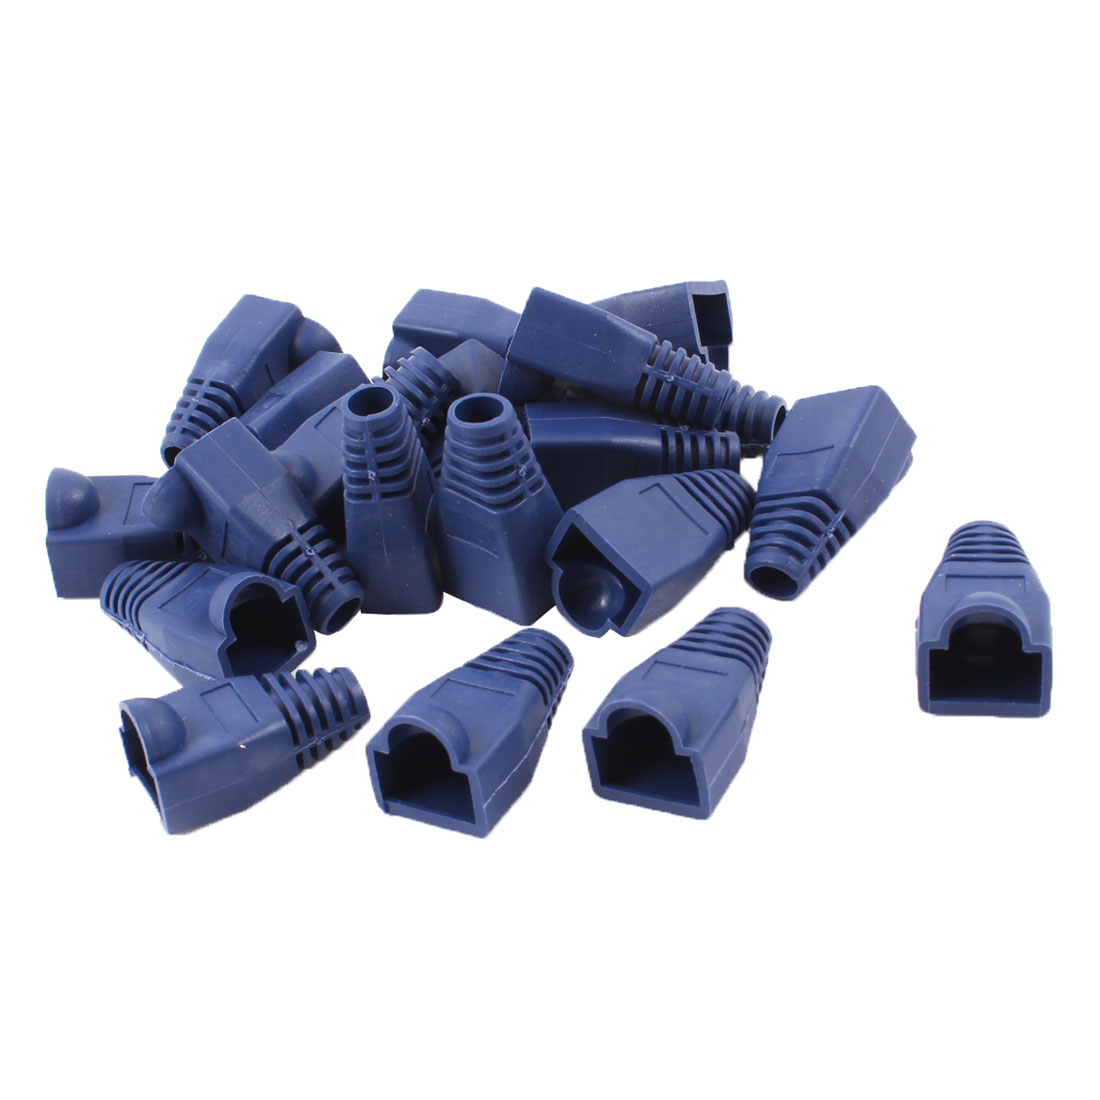 20 Pieces Blue Ethernet RJ45 Strain Replacement Cover Boots 2.6 x 1.4 x 1.4cm